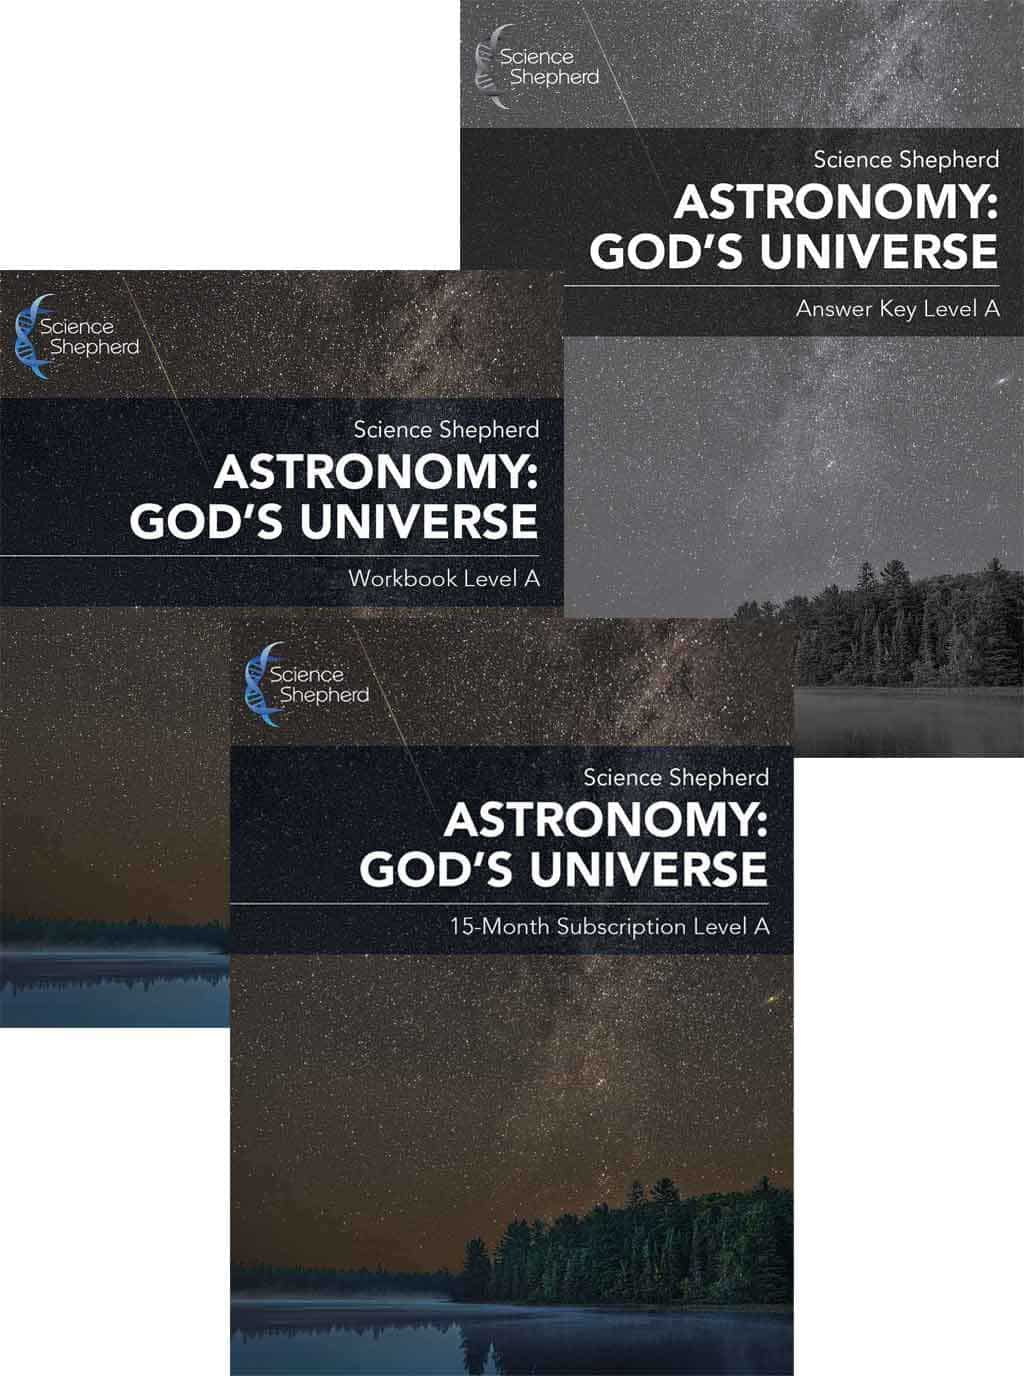 Christian astronomy curriculum level a bundle cover